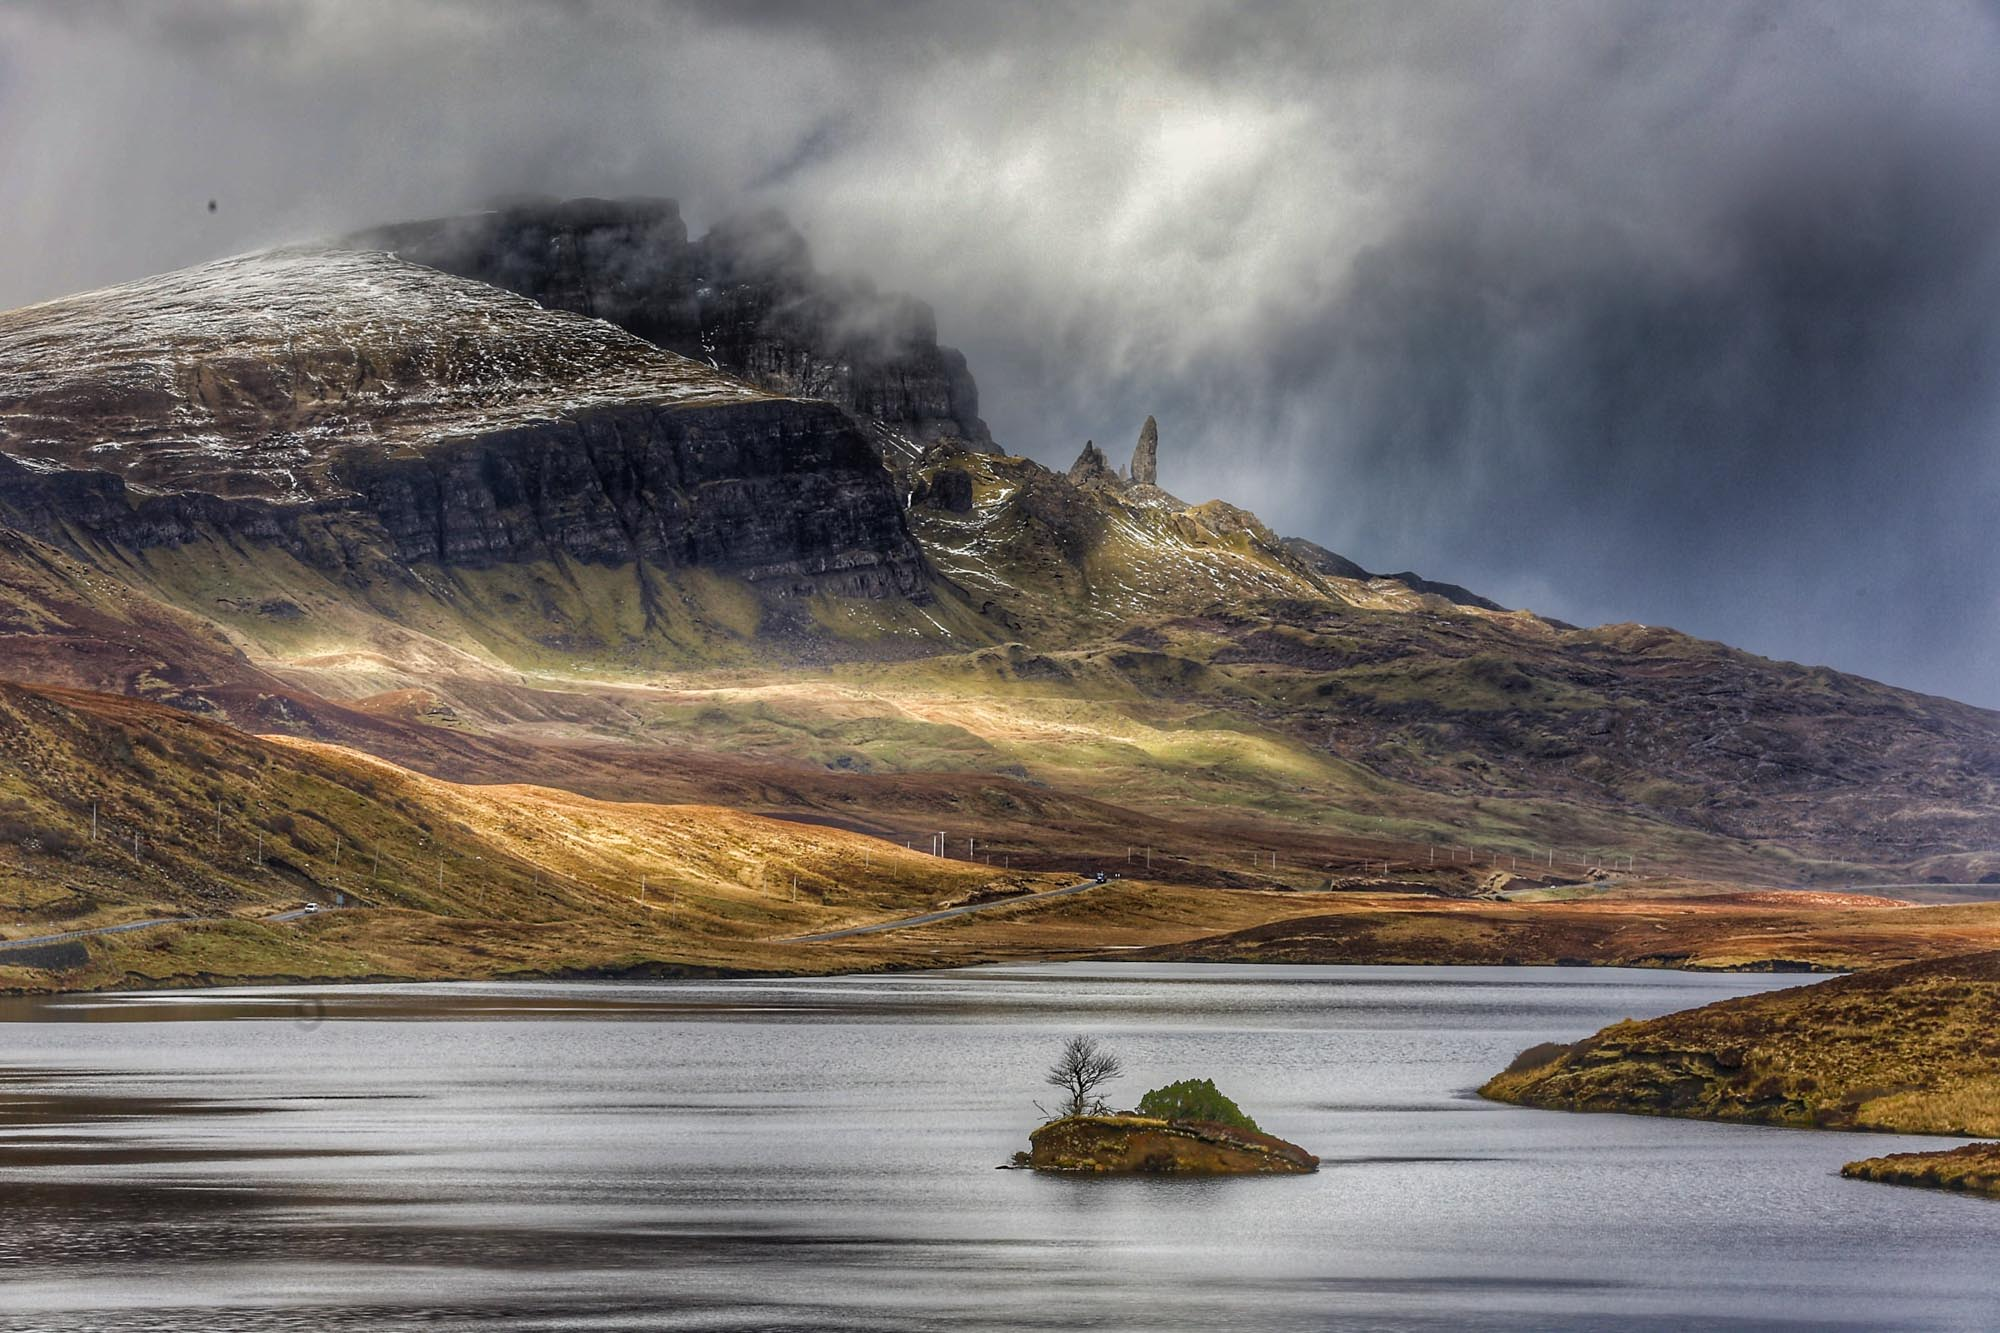 Isle of Skye. Winter in Scotland